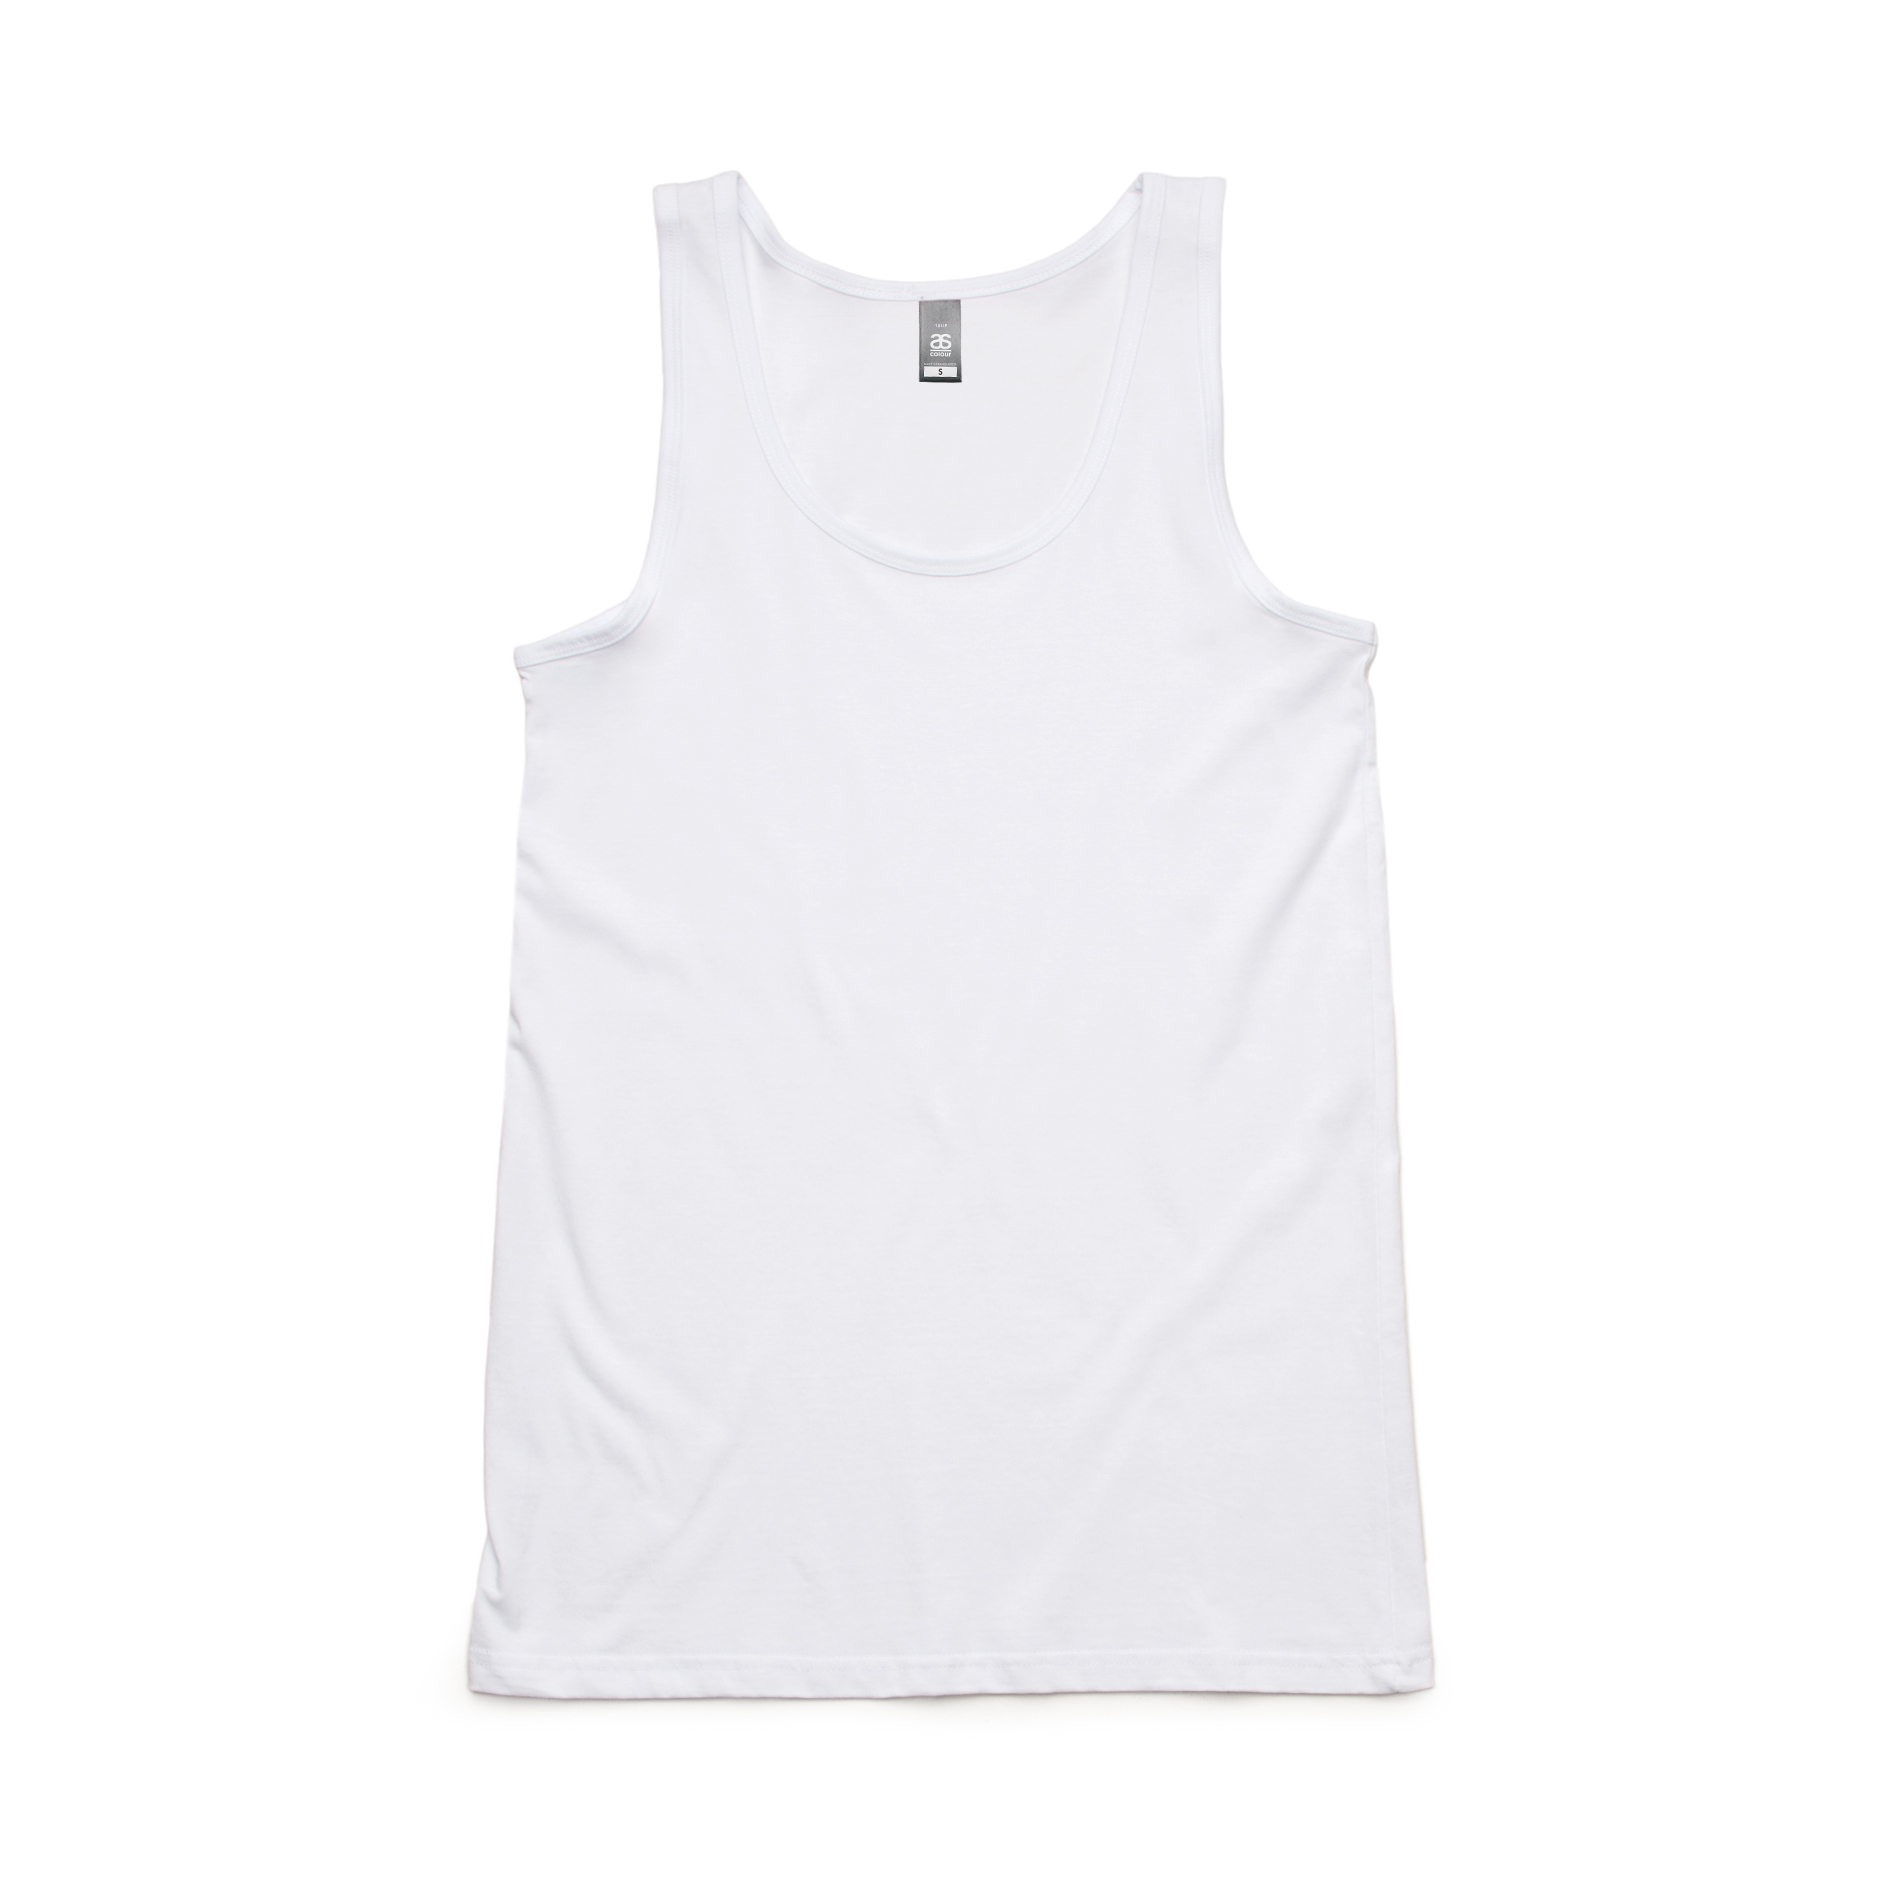 45f8c5c8e87f4 AS Colour - Authentic Singlet Easy and Affordable custom t-shirt printing